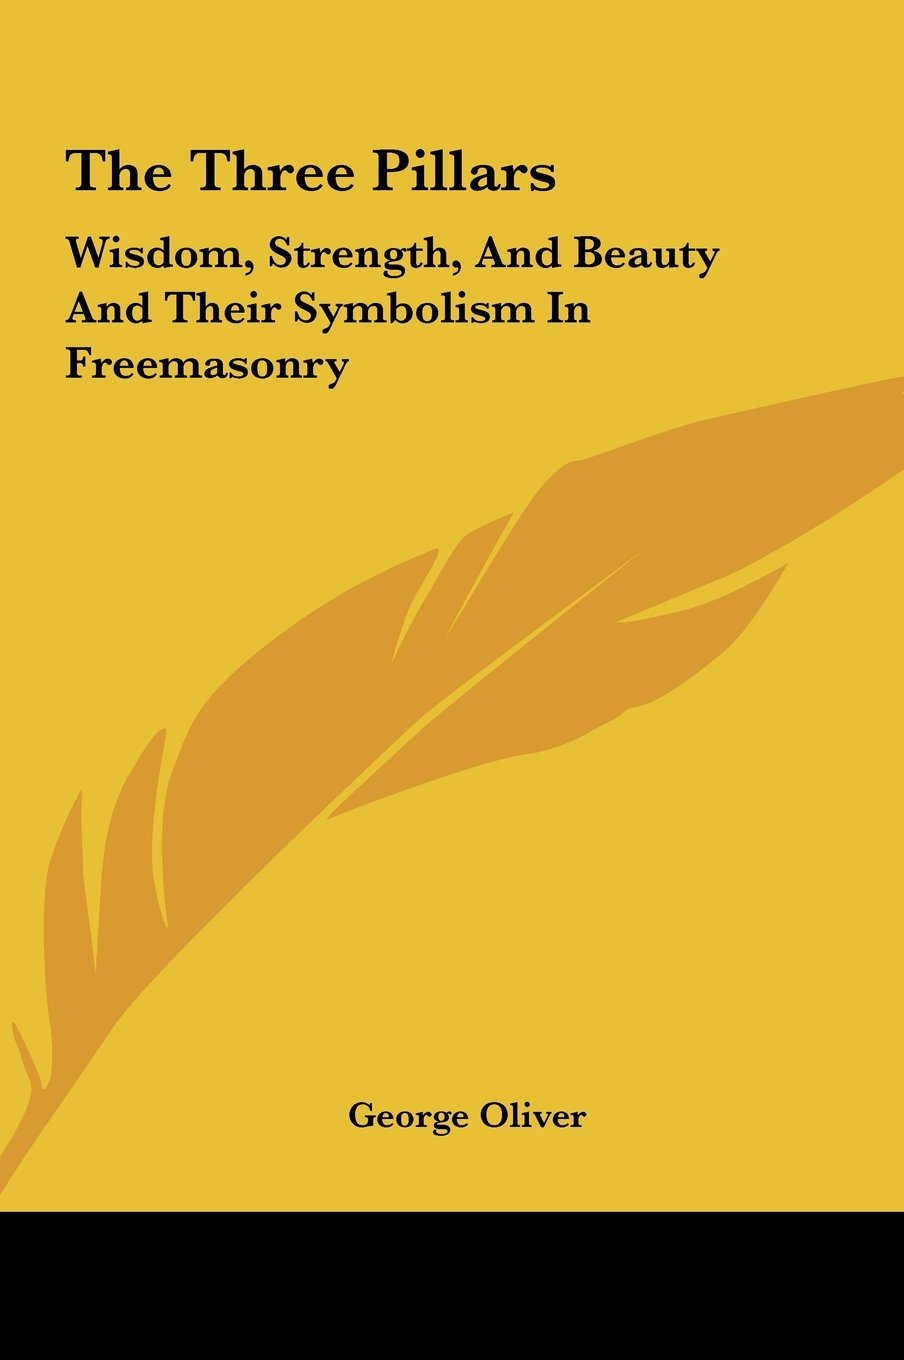 Download The Three Pillars: Wisdom, Strength, And Beauty And Their Symbolism In Freemasonry pdf epub